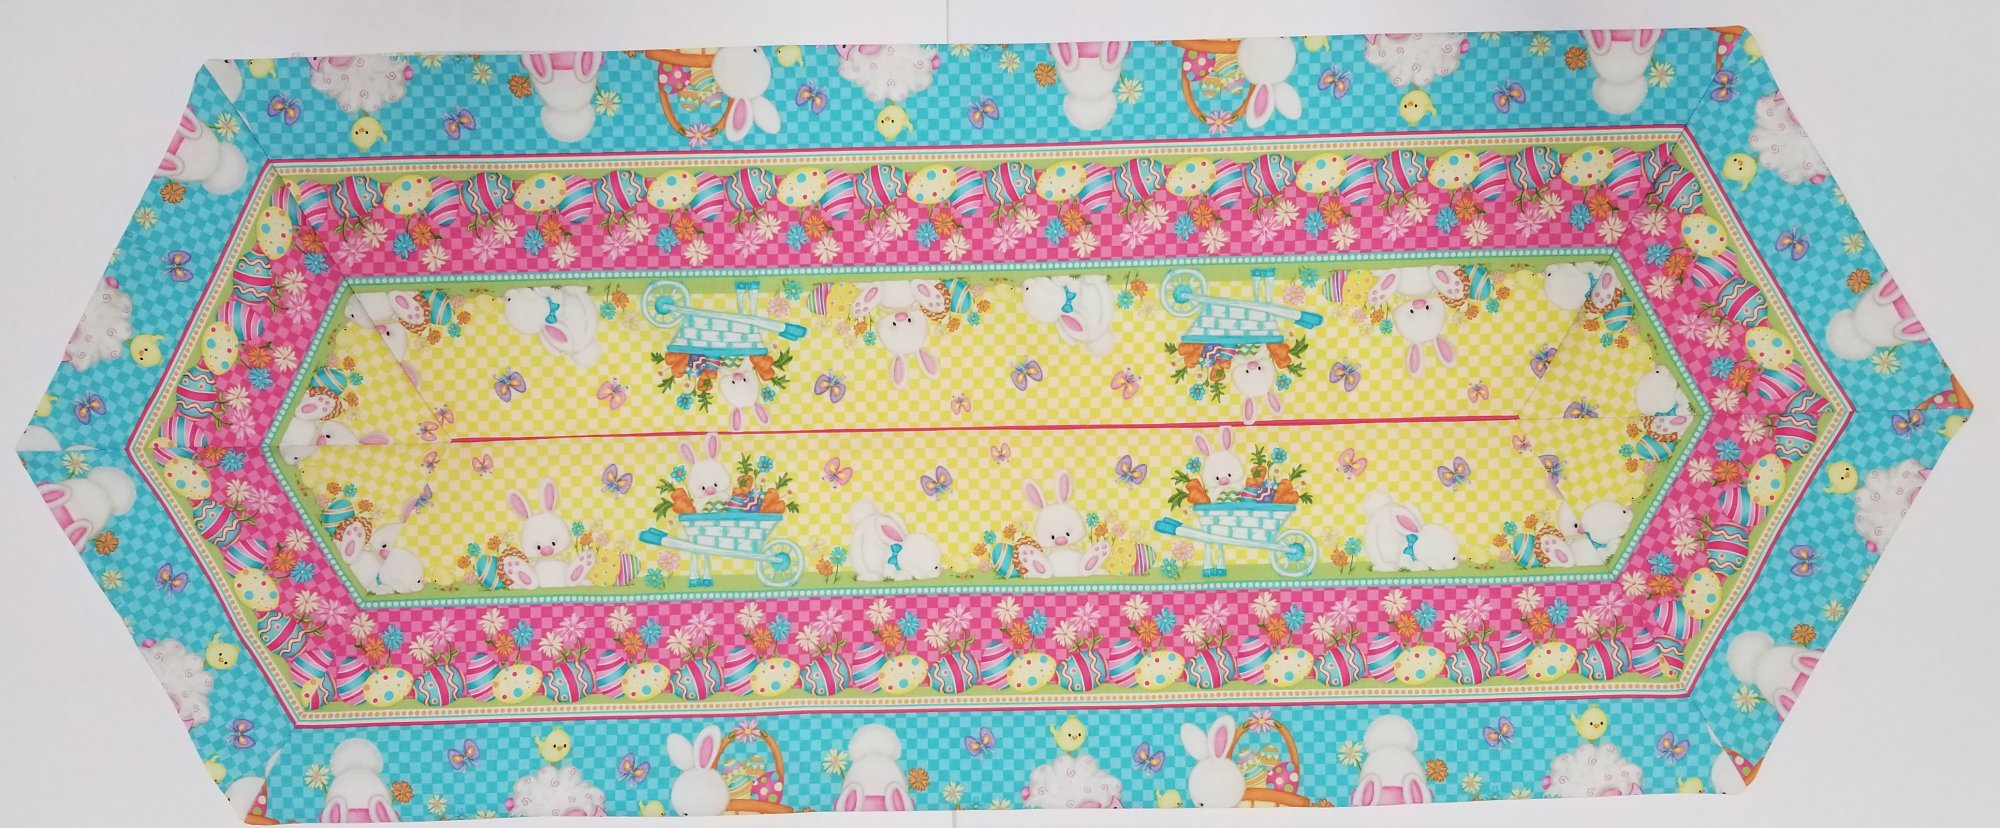 Easy Striped Bunny Table Runner kit